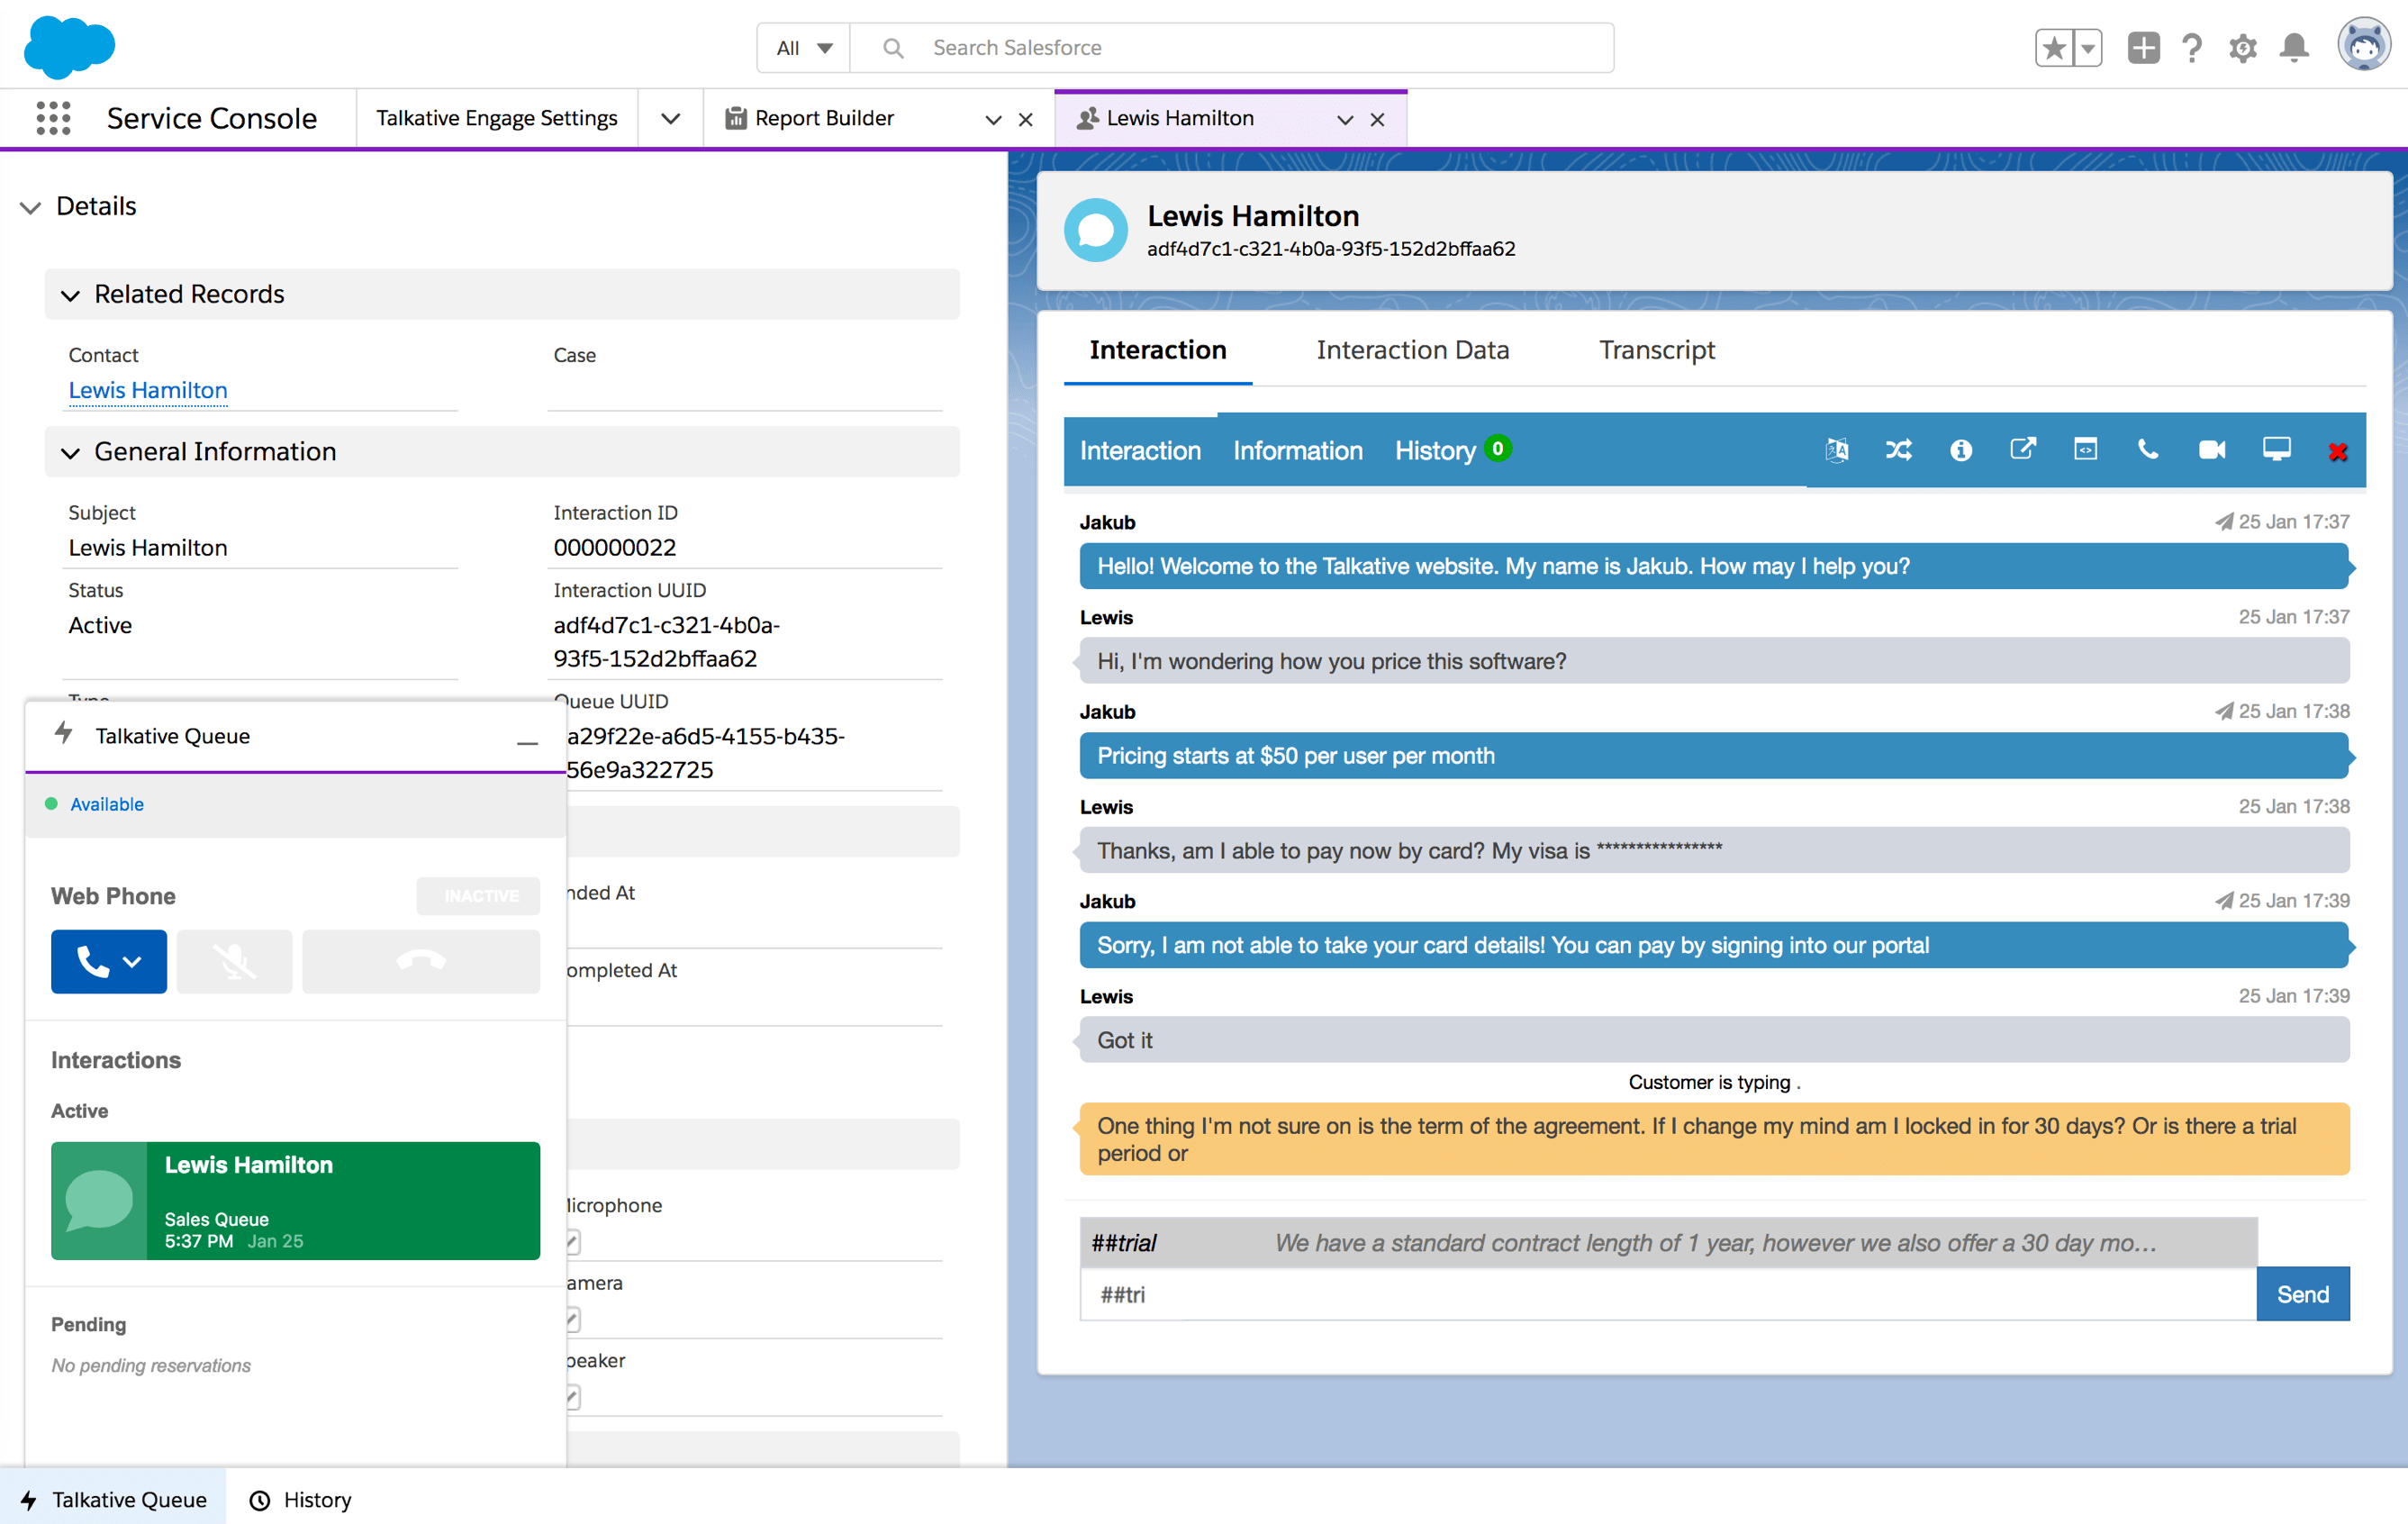 Live chat integrated with Salesforce agent dashboard